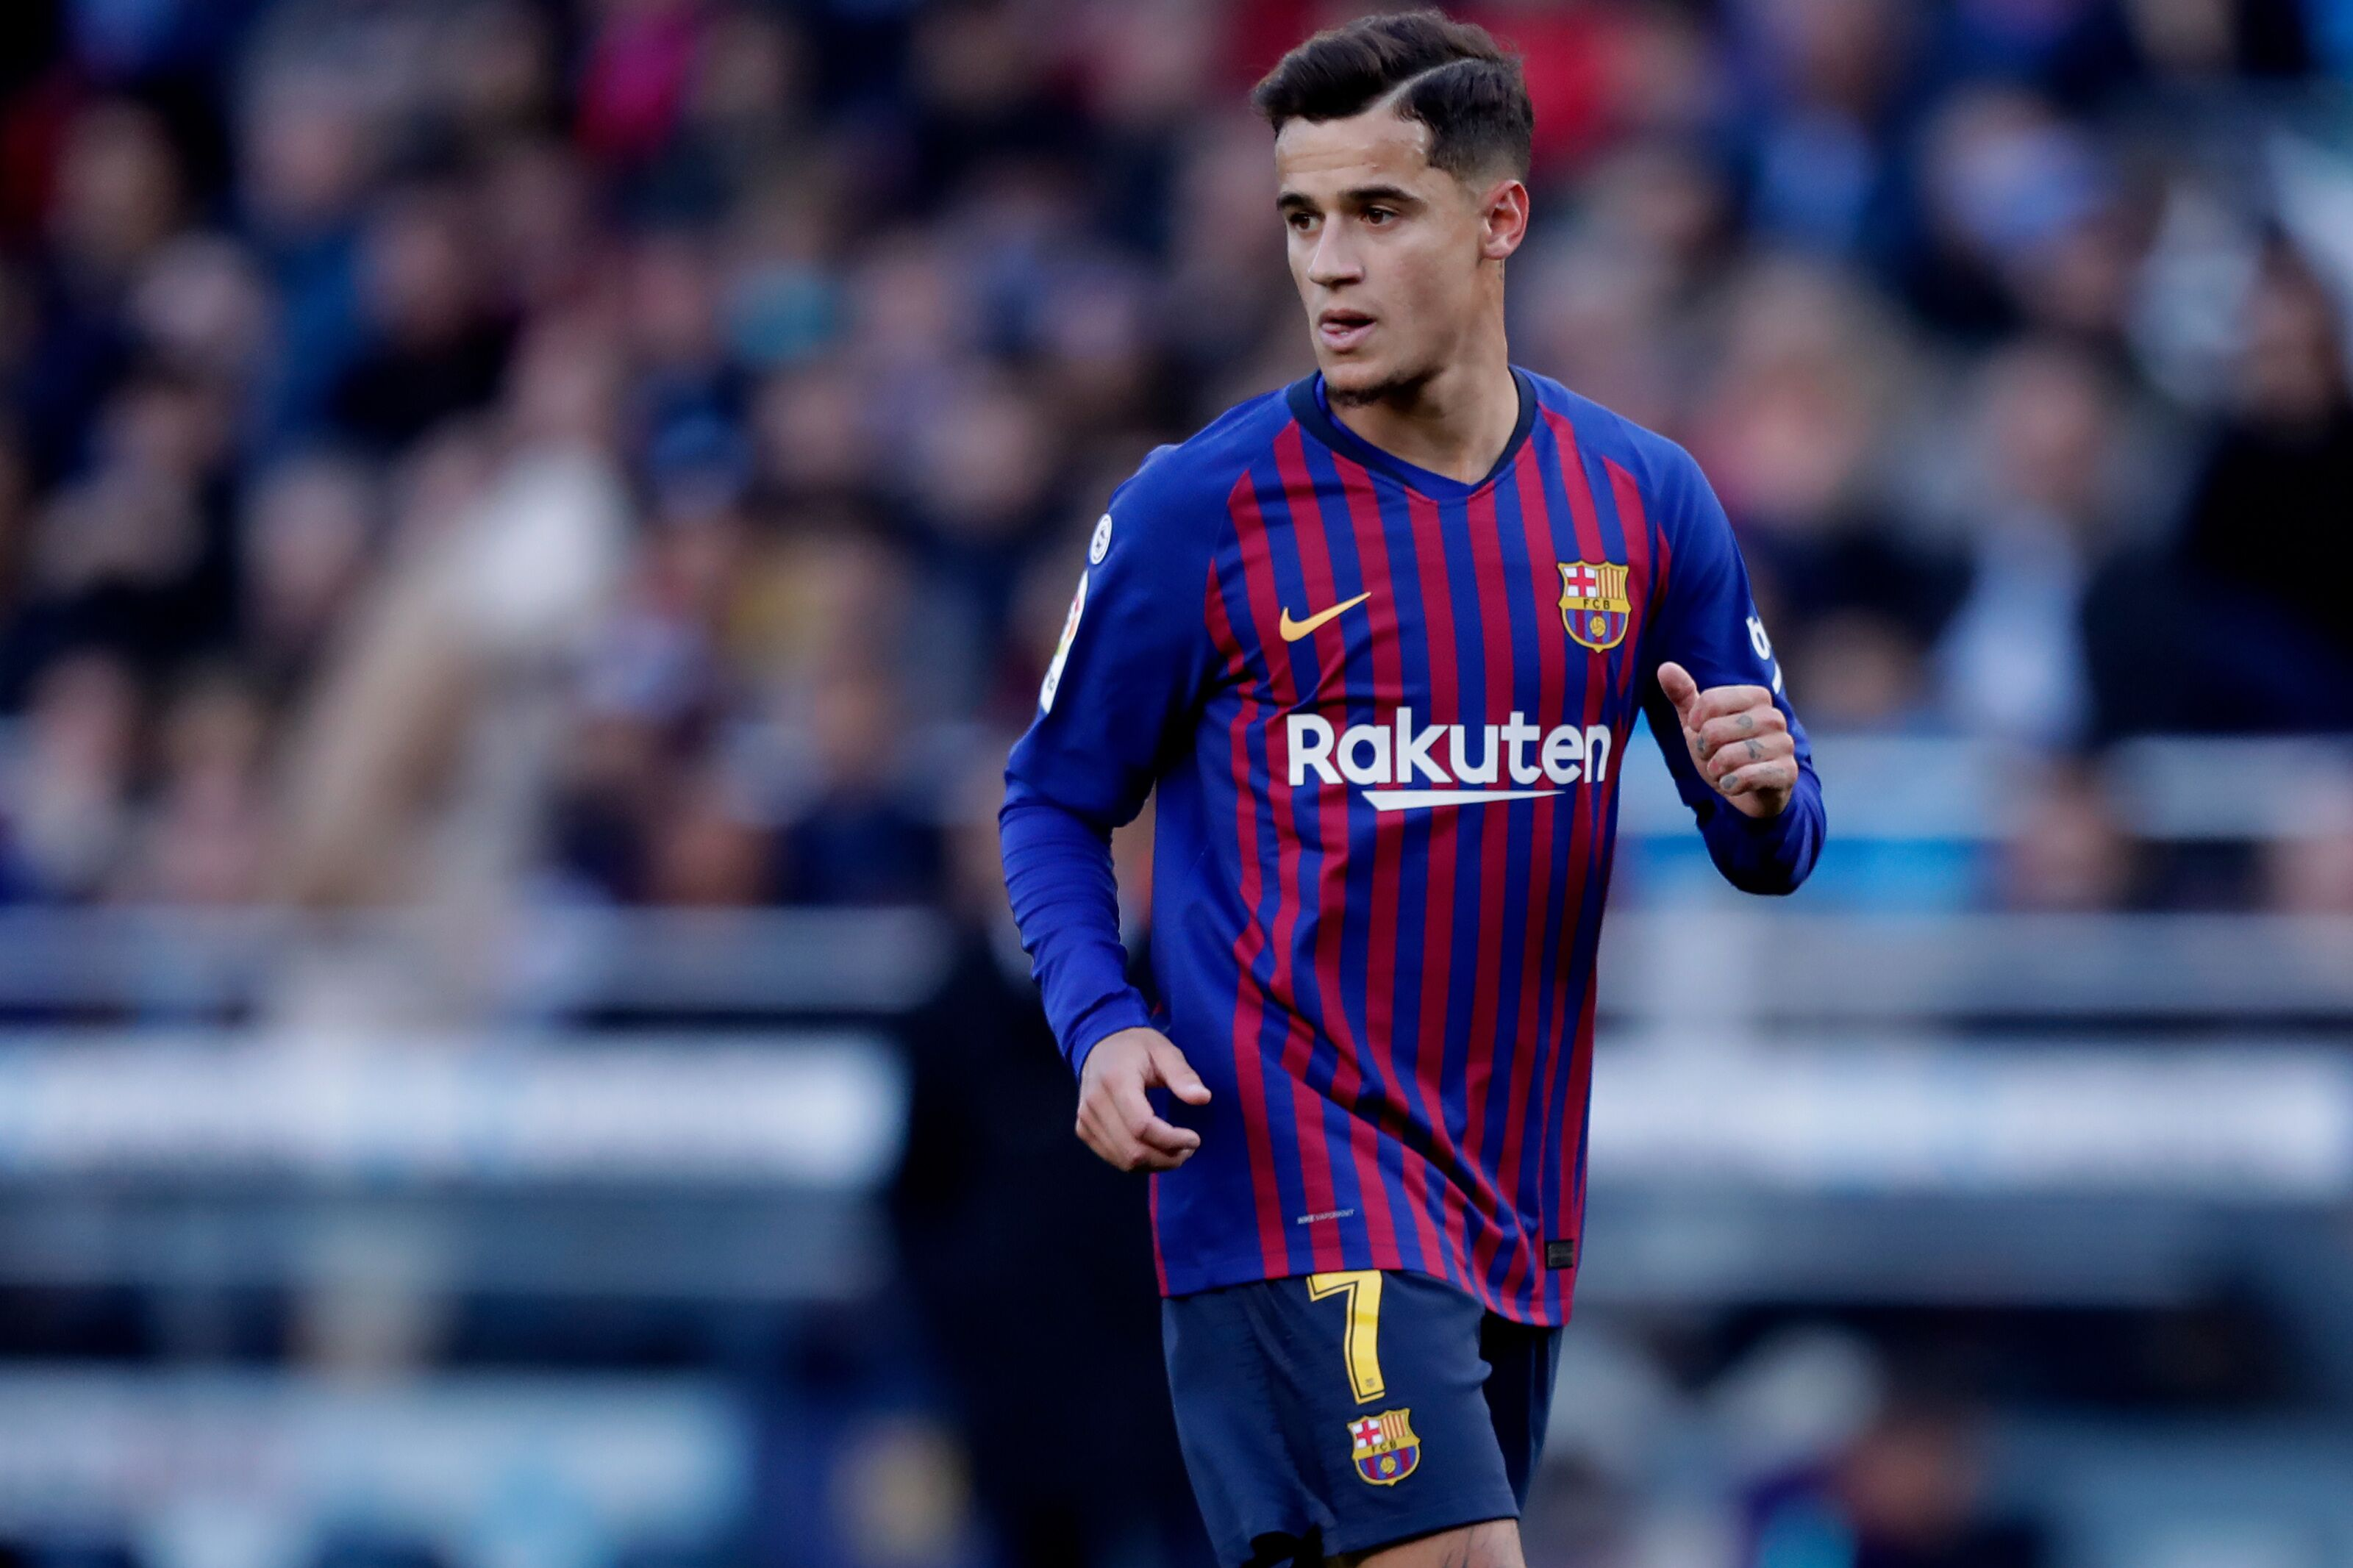 c171fc2a65a Barcelona: Philippe Coutinho continues to underperform